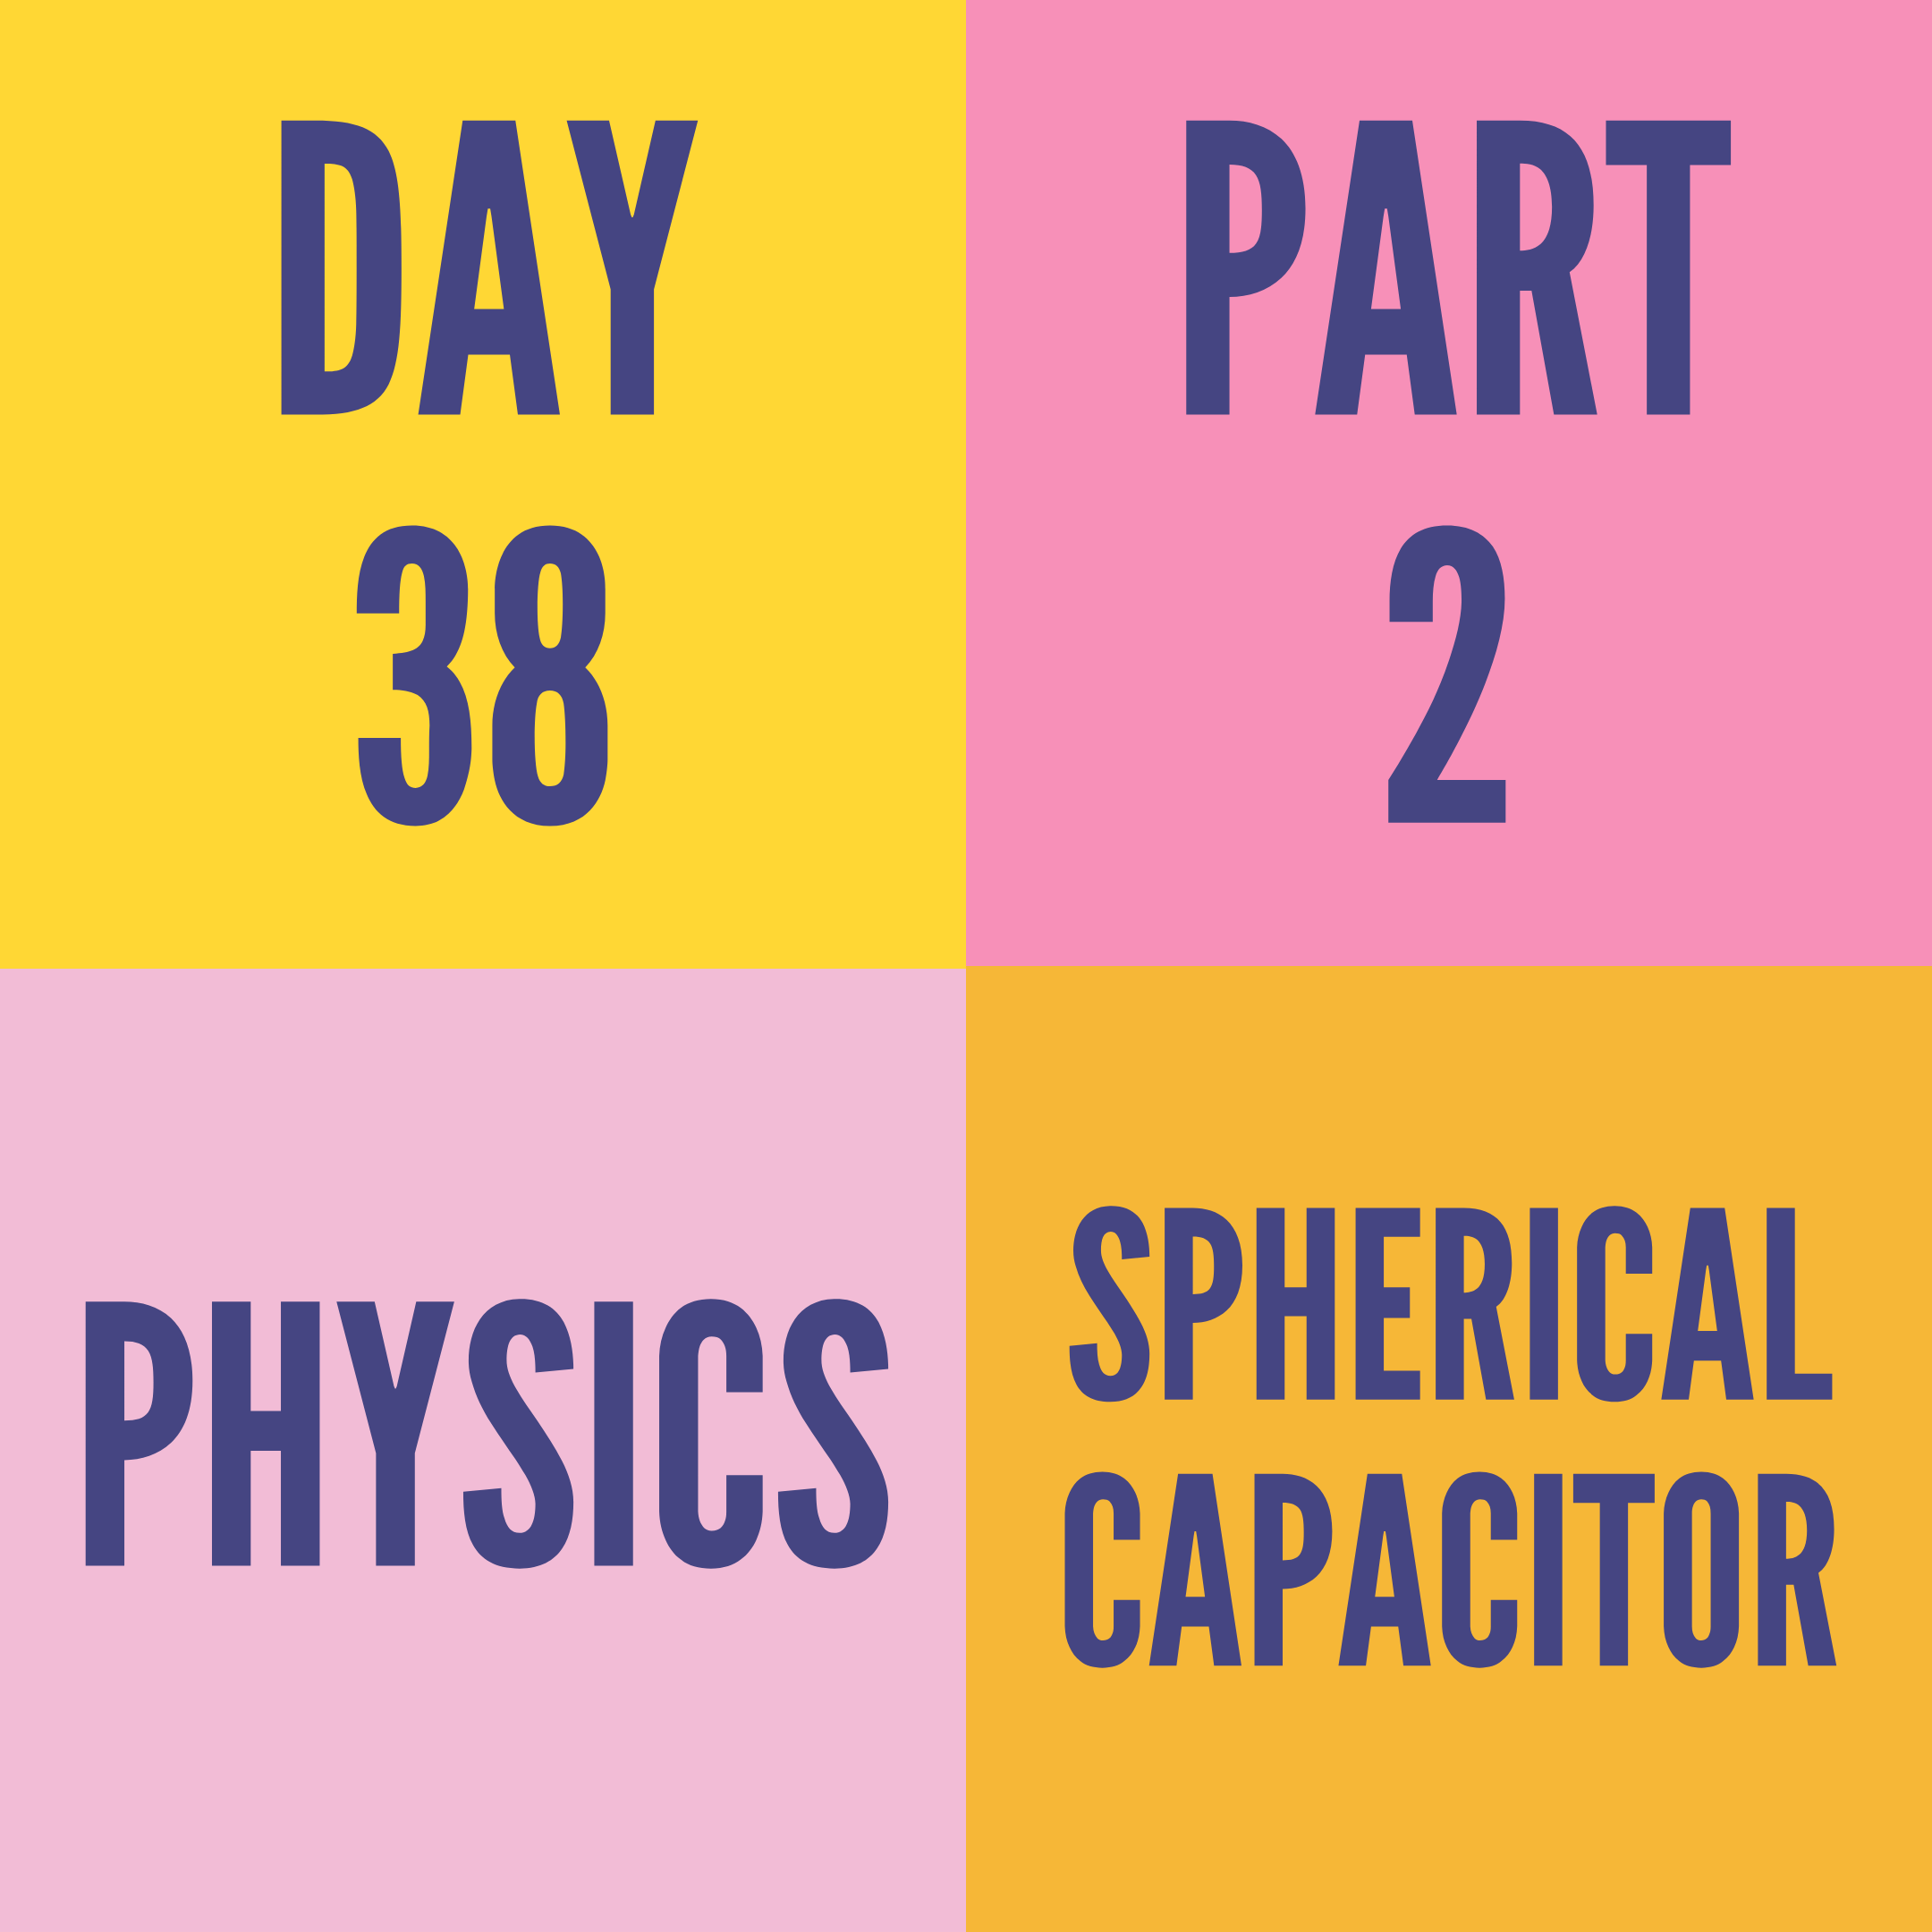 DAY-38 PART-2 SPHERICAL CAPACITOR